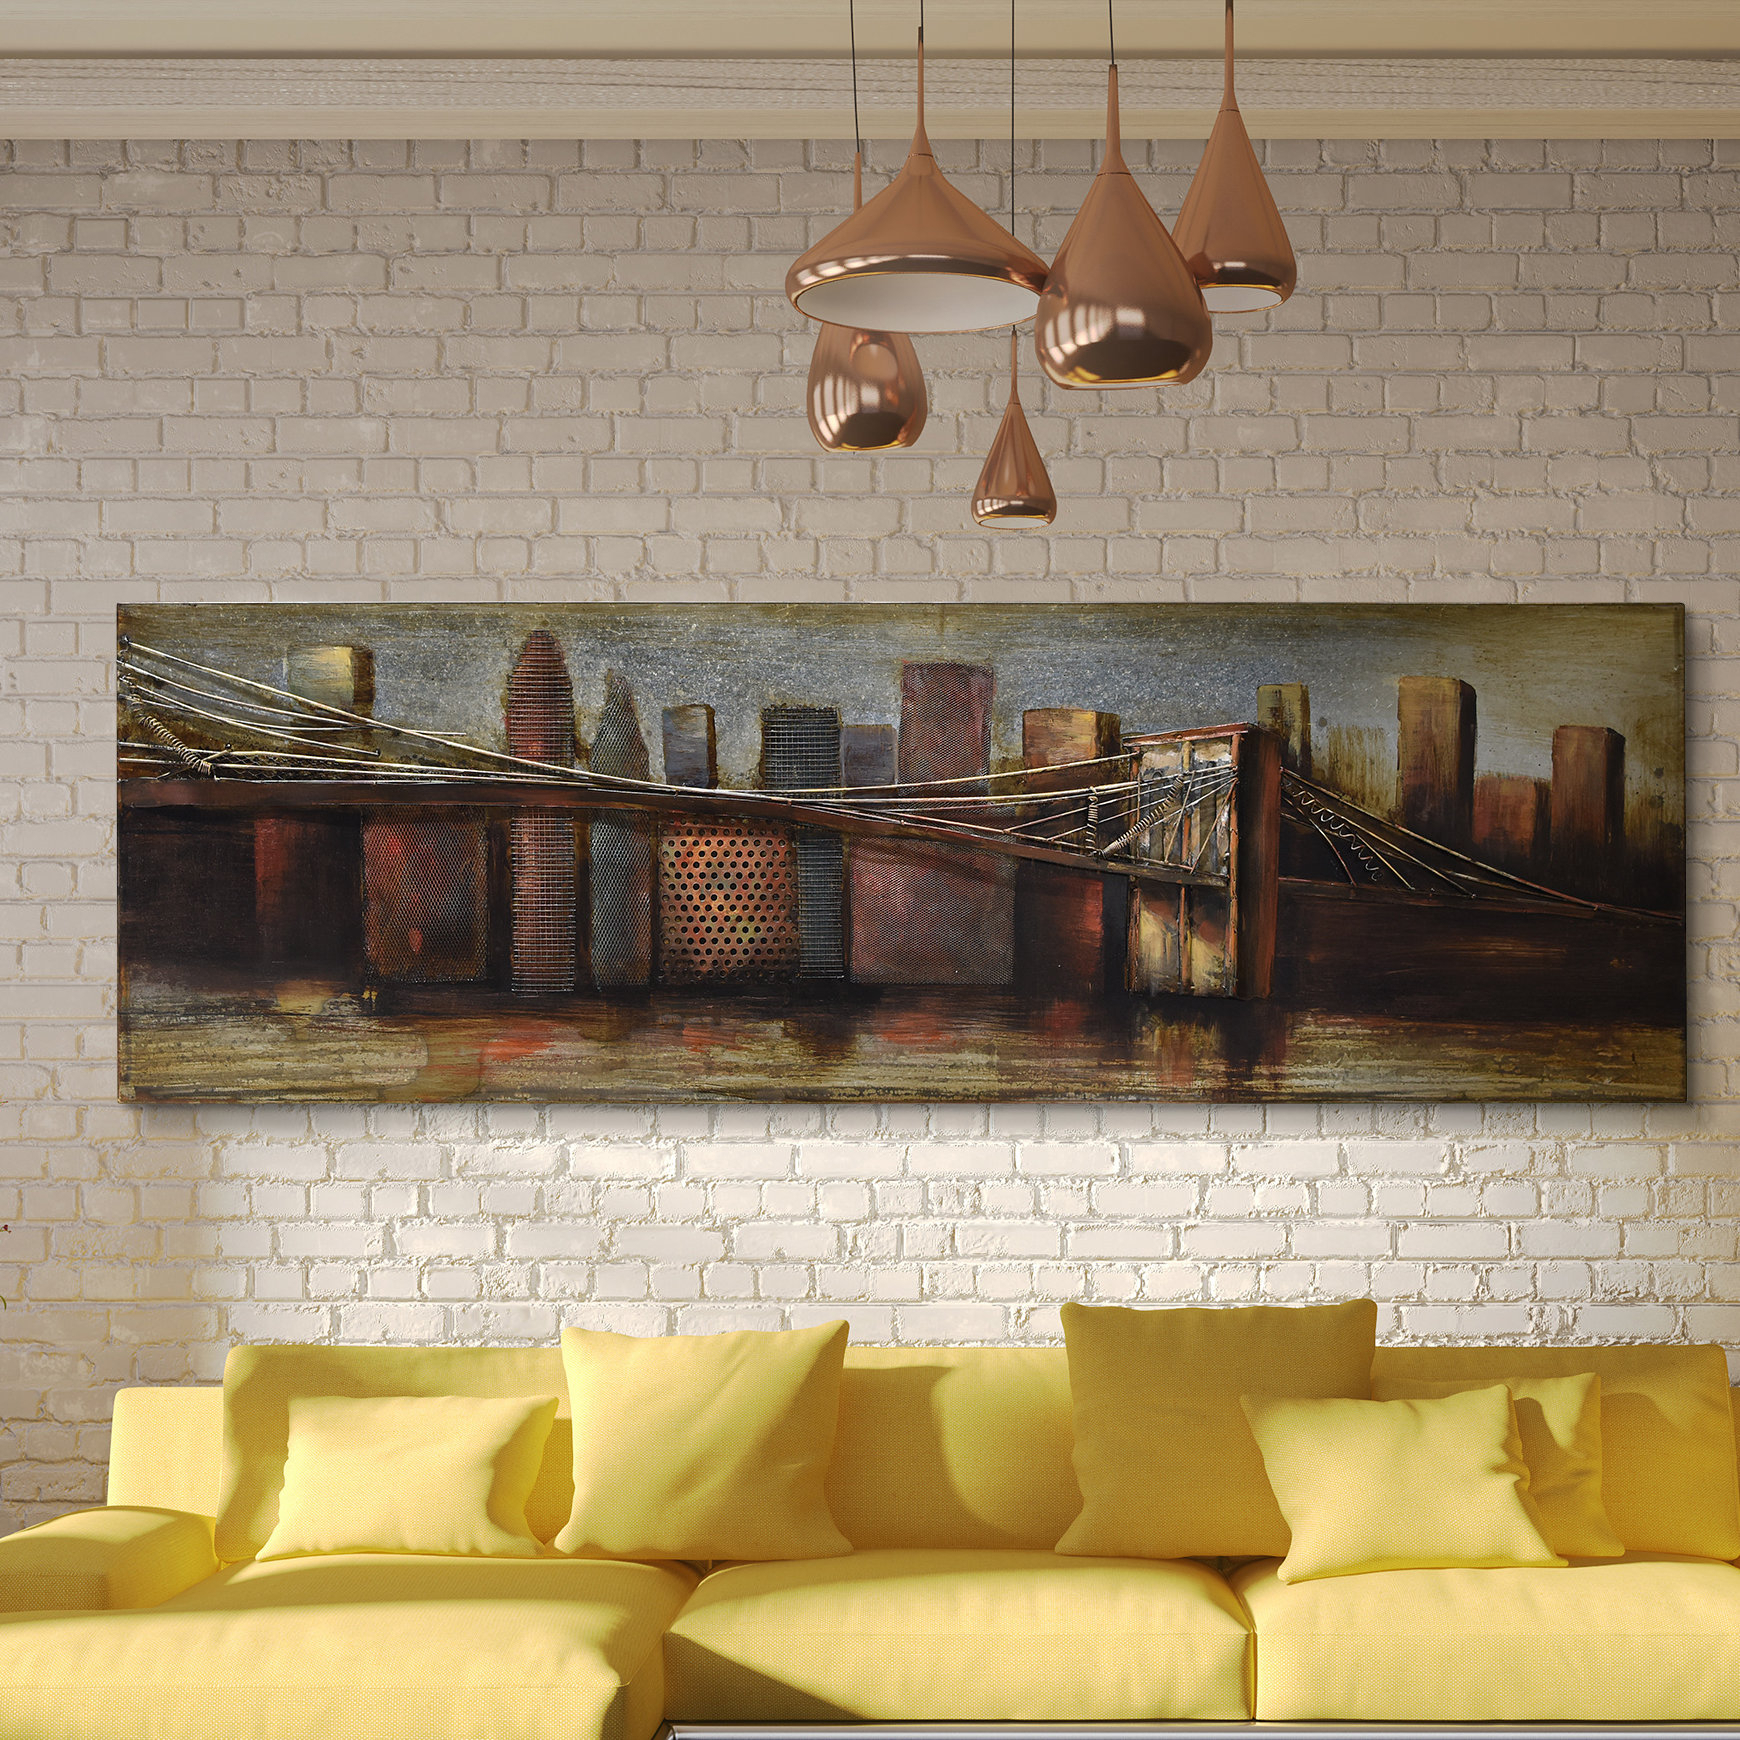 """Empire Art Direct """"bridge To The City 1"""" Mixed Media Iron Hand Pertaining To Best And Newest """"bridge To The City"""" Mixed Media Iron Hand Painted Dimensional Wall Decor (View 8 of 20)"""